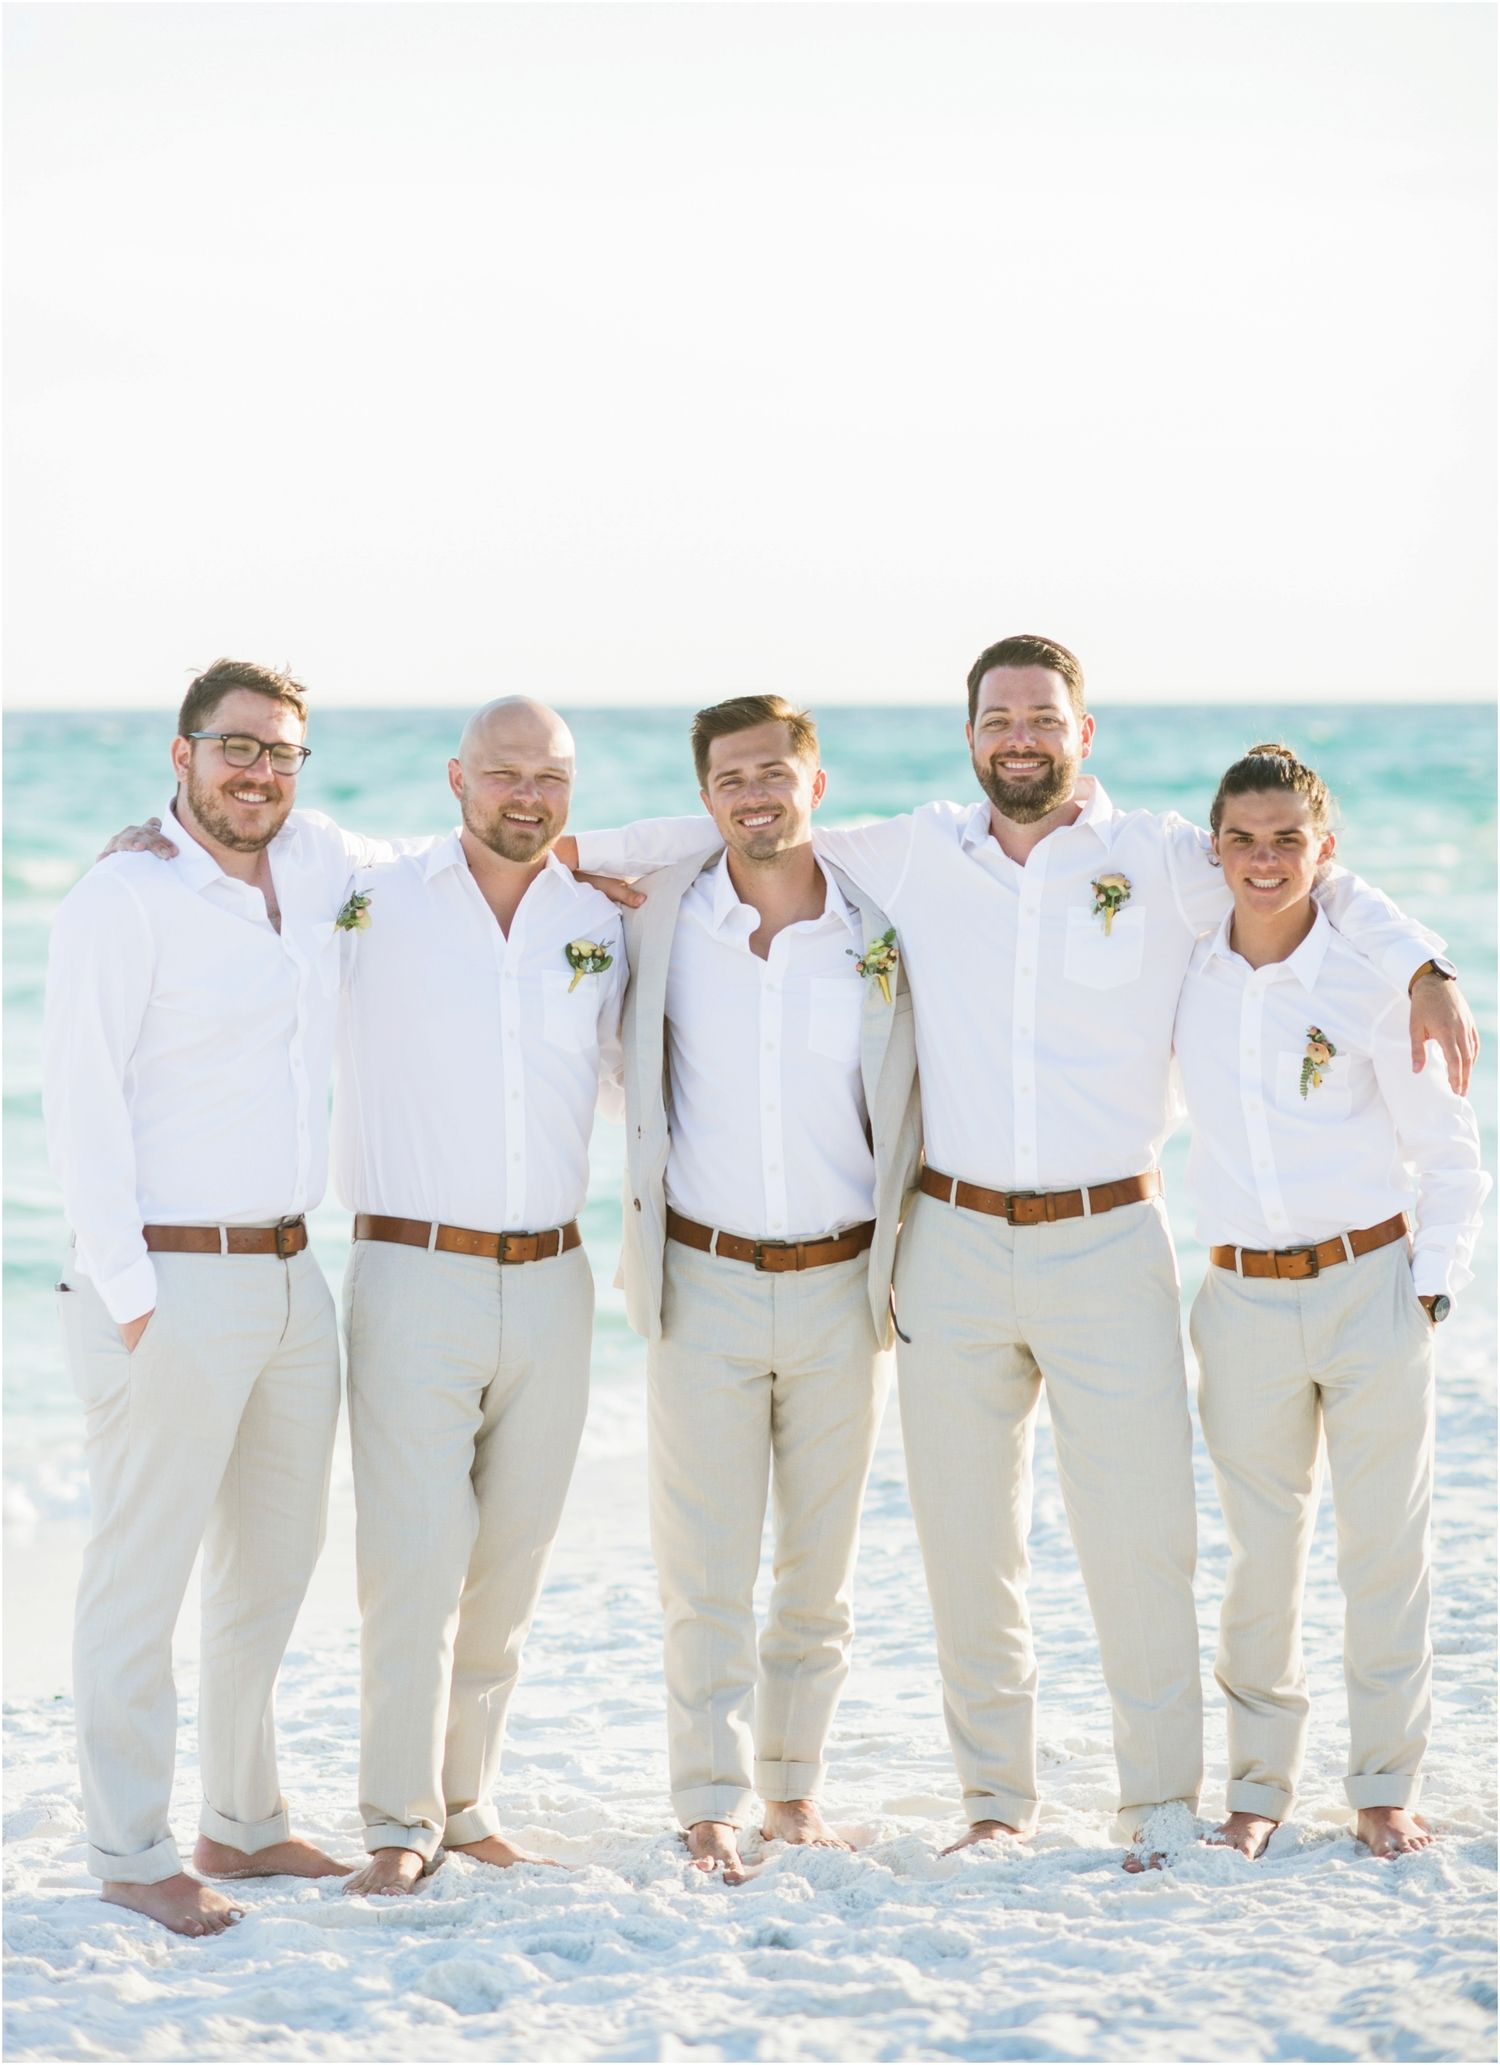 Arkins Wedding Jade Dan Highlands House Santa Rosa Beach Fl Sweet Julep Photography Beach Wedding Groomsmen Beach Wedding Groom Beach Wedding Attire